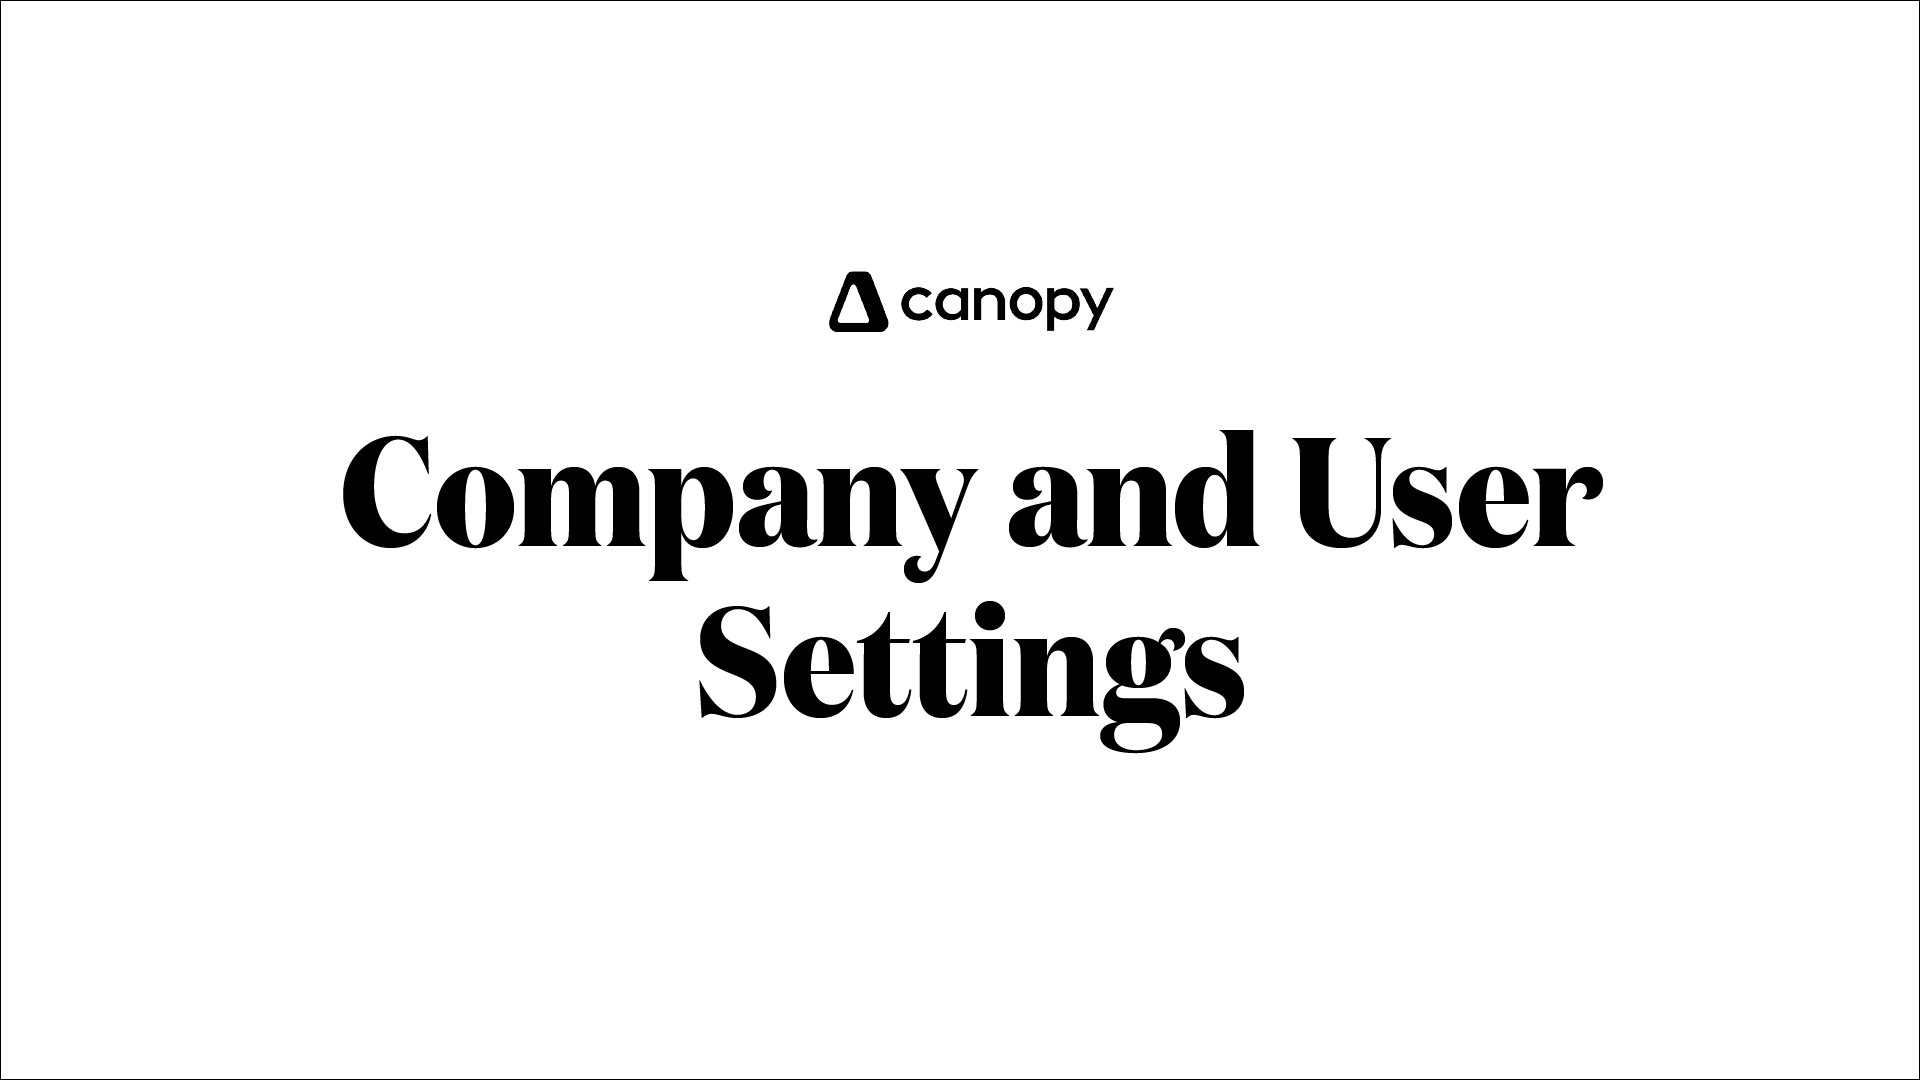 Canopy and User Settings